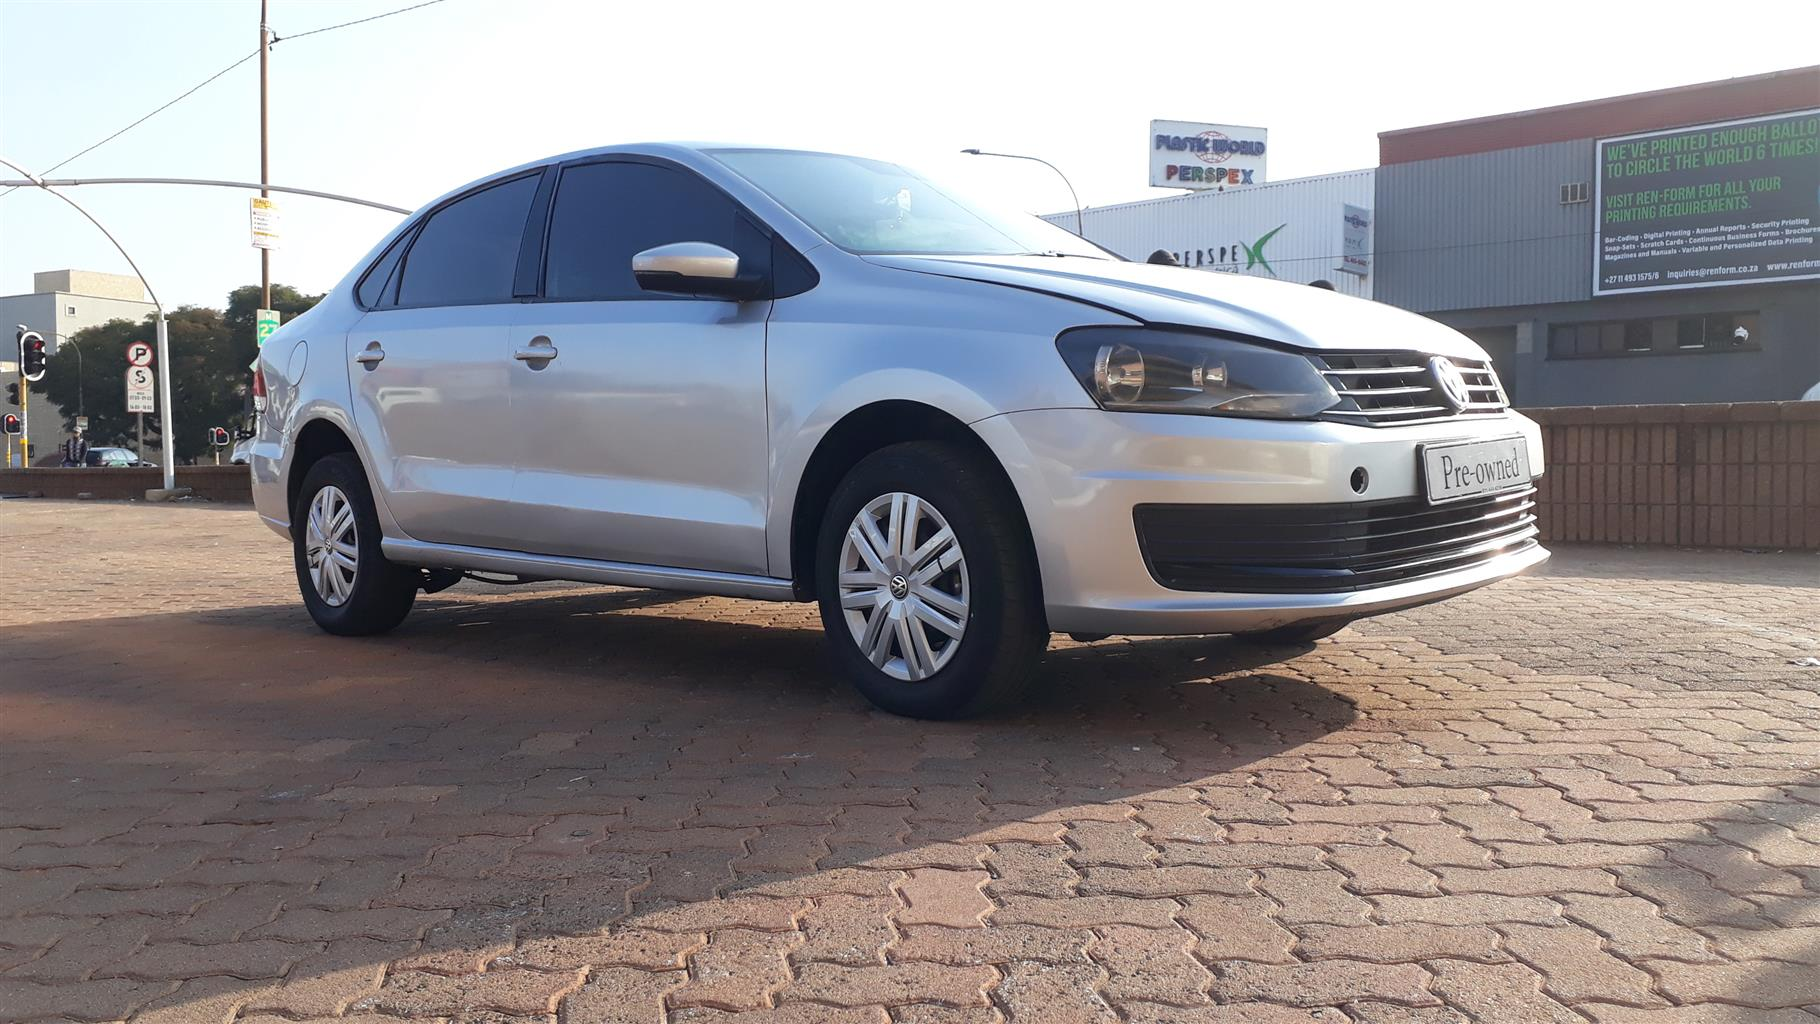 2018 Vw Polo Sedan Polo Gp 1 4 Comfortline Junk Mail